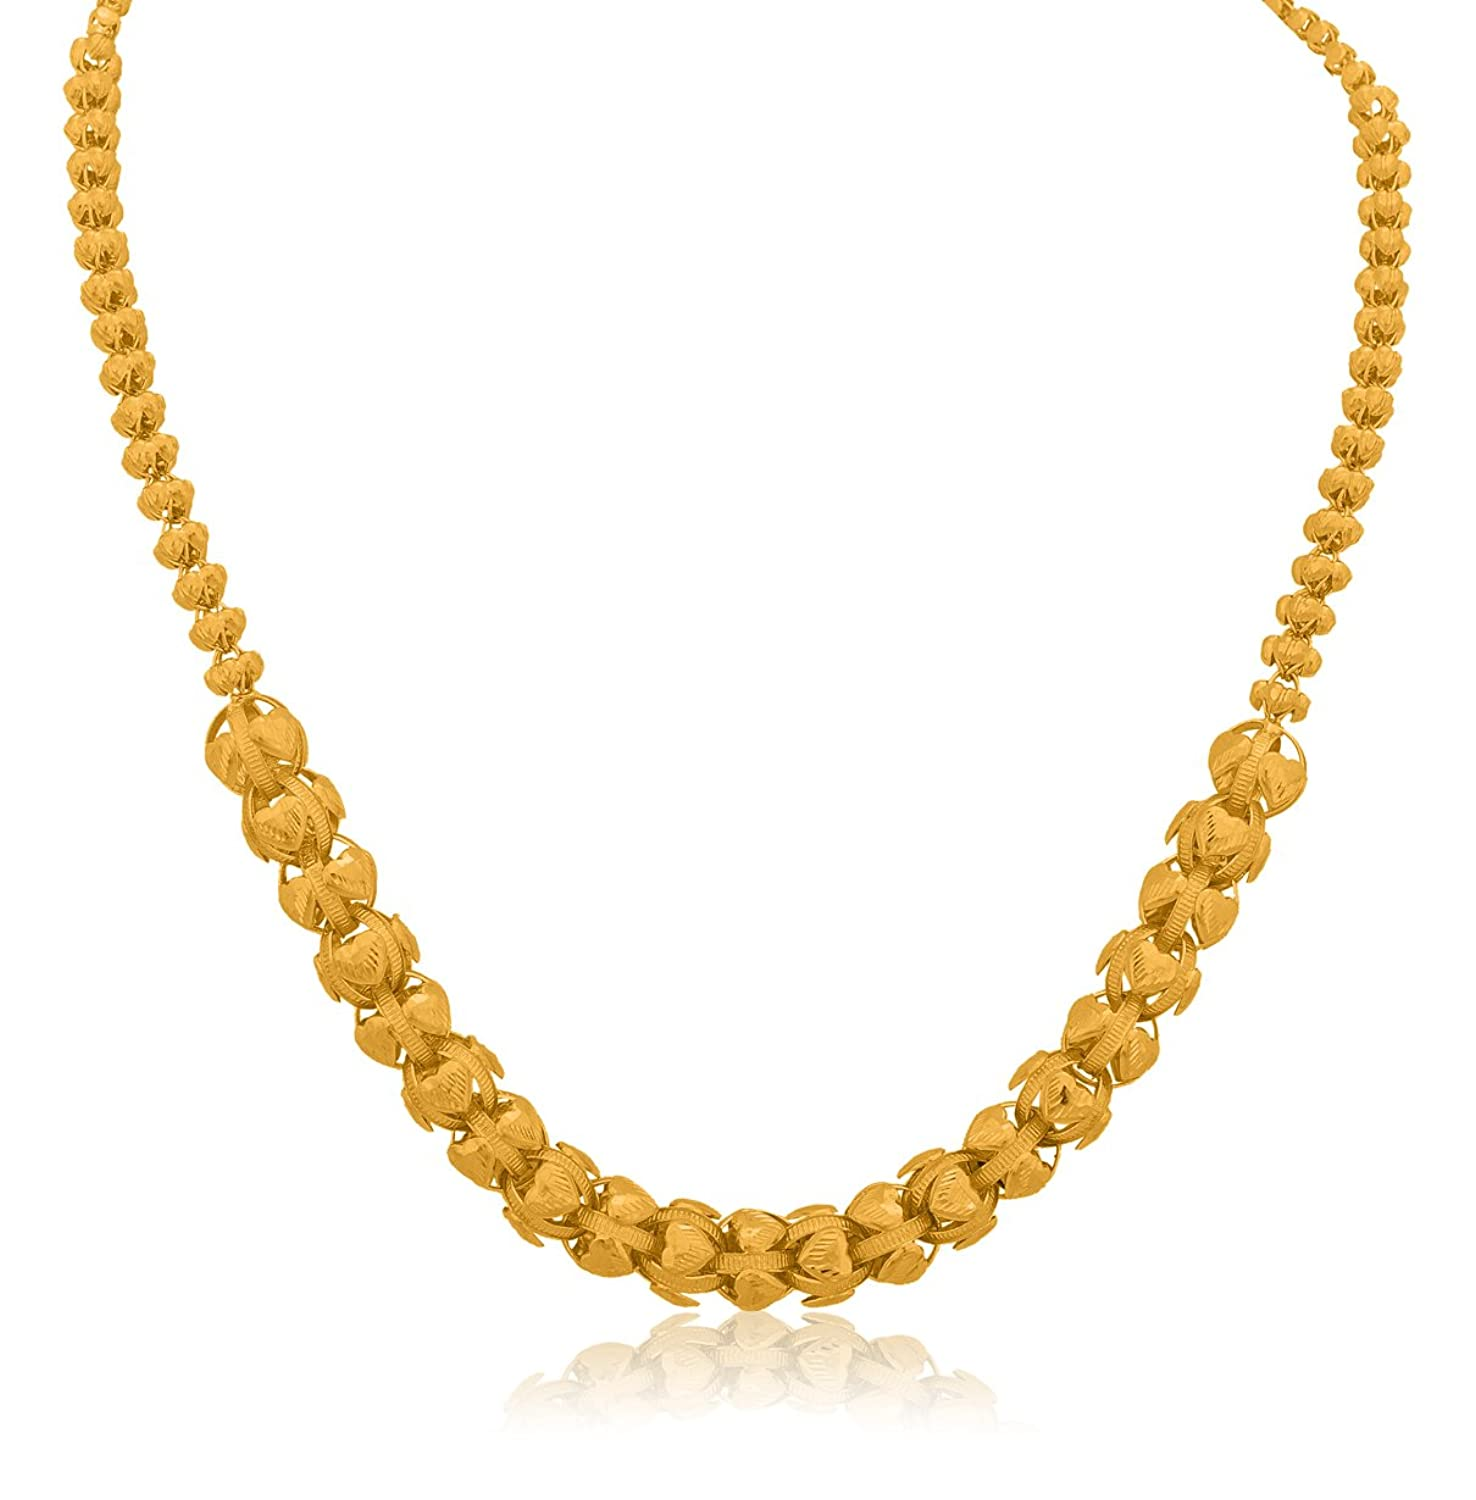 Buy Senco Gold 22k (916) Yellow Gold Chain Necklace Online at Low ...